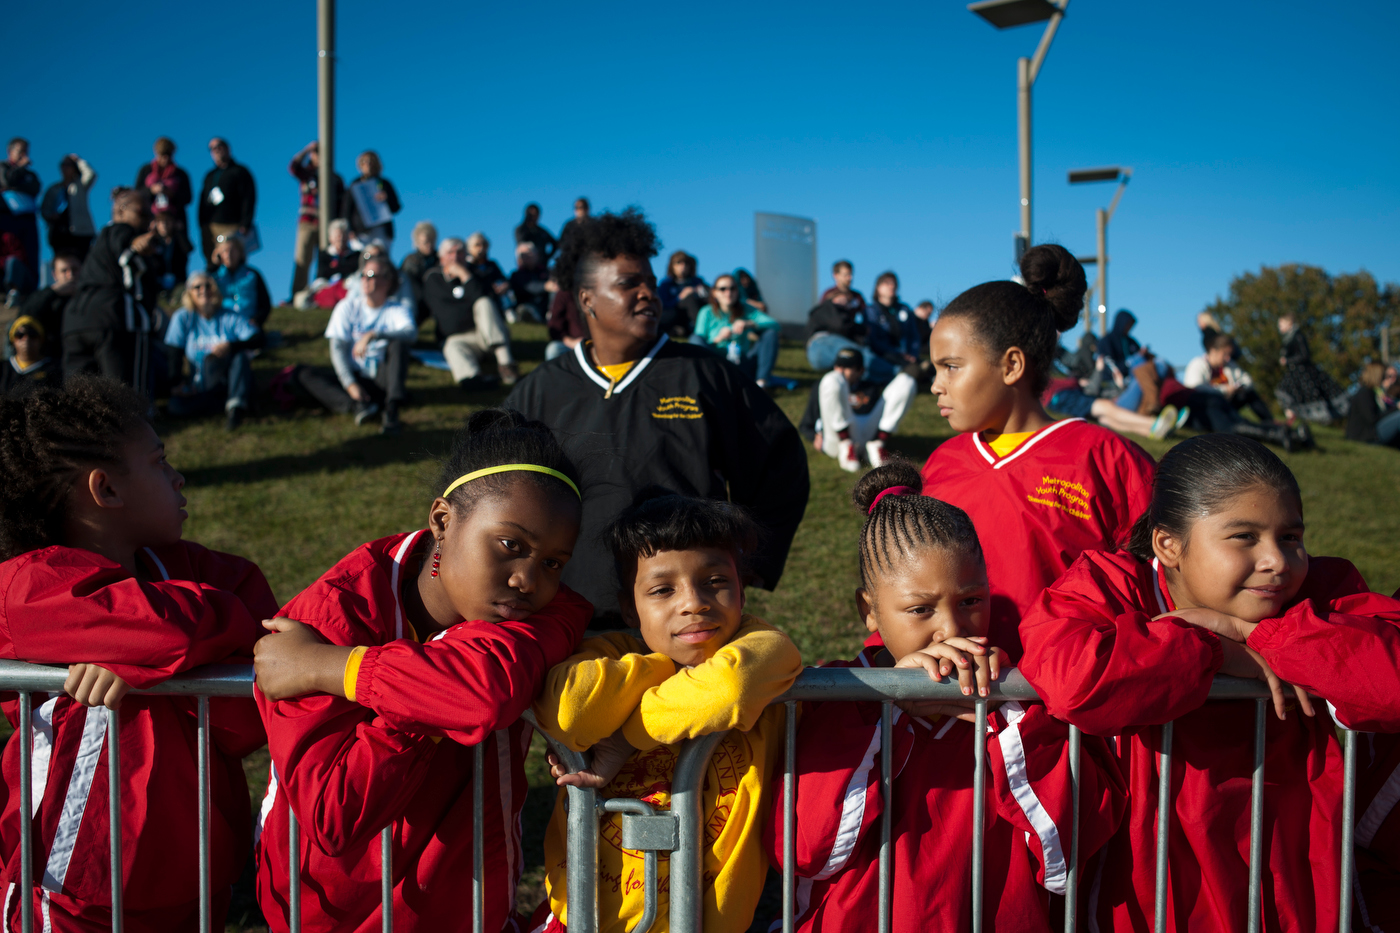 Members of the Quad Cities Metropolitan Youth Program listen as their drumline warms up the crowd ahead of a campaign rally and march for Sen. Bernie Sanders in Des Moines, IA.